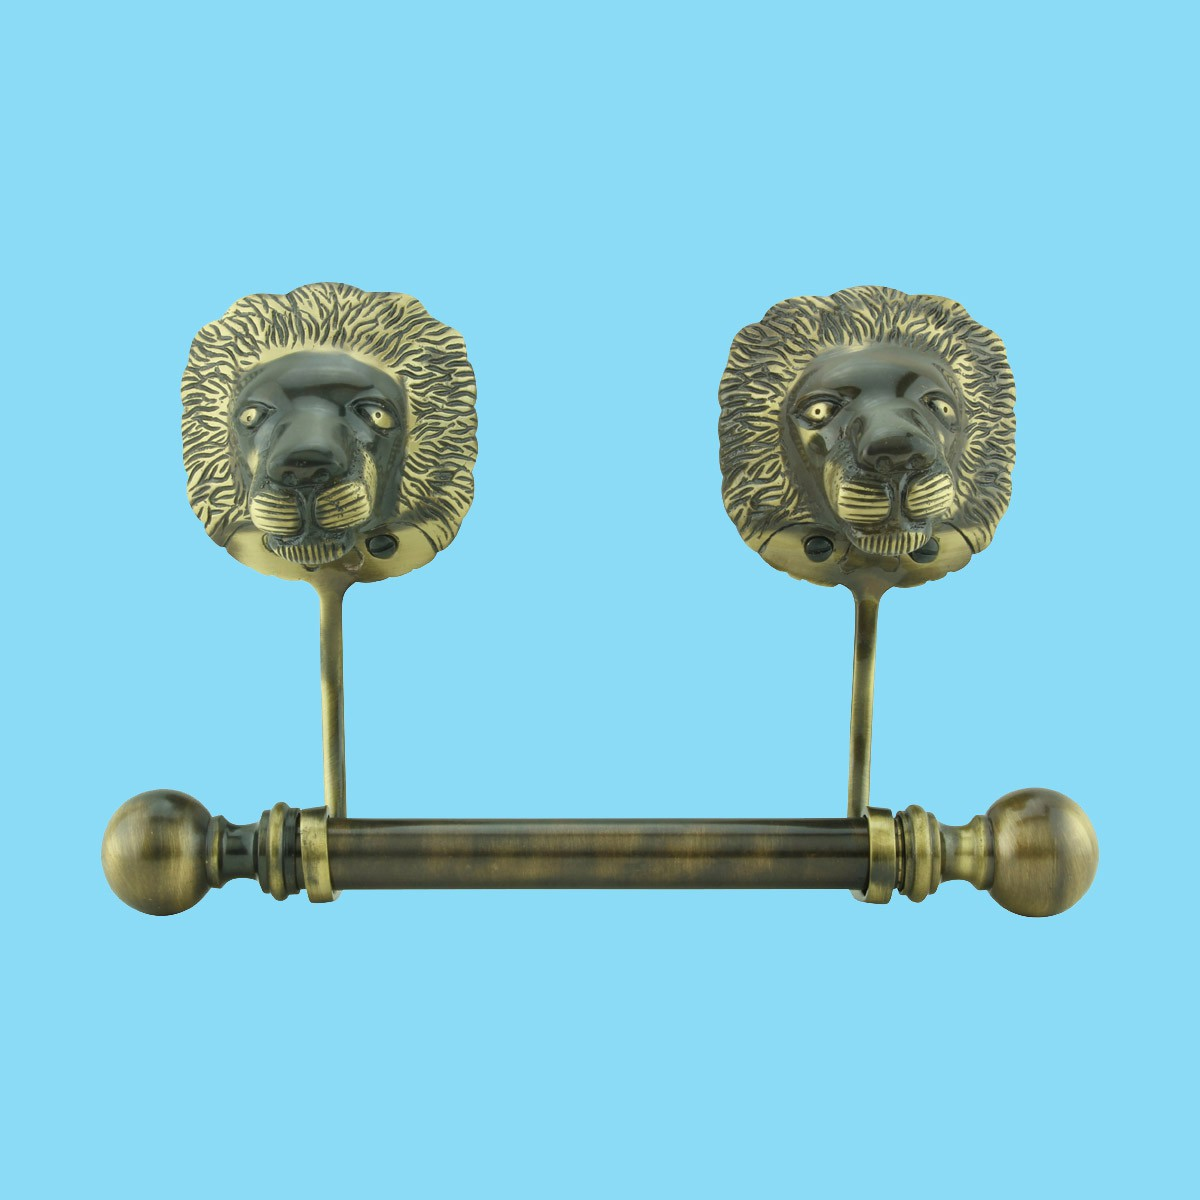 Antique Toilet Paper Holder Wall Mount Anti Brass Lions Tissue Holder